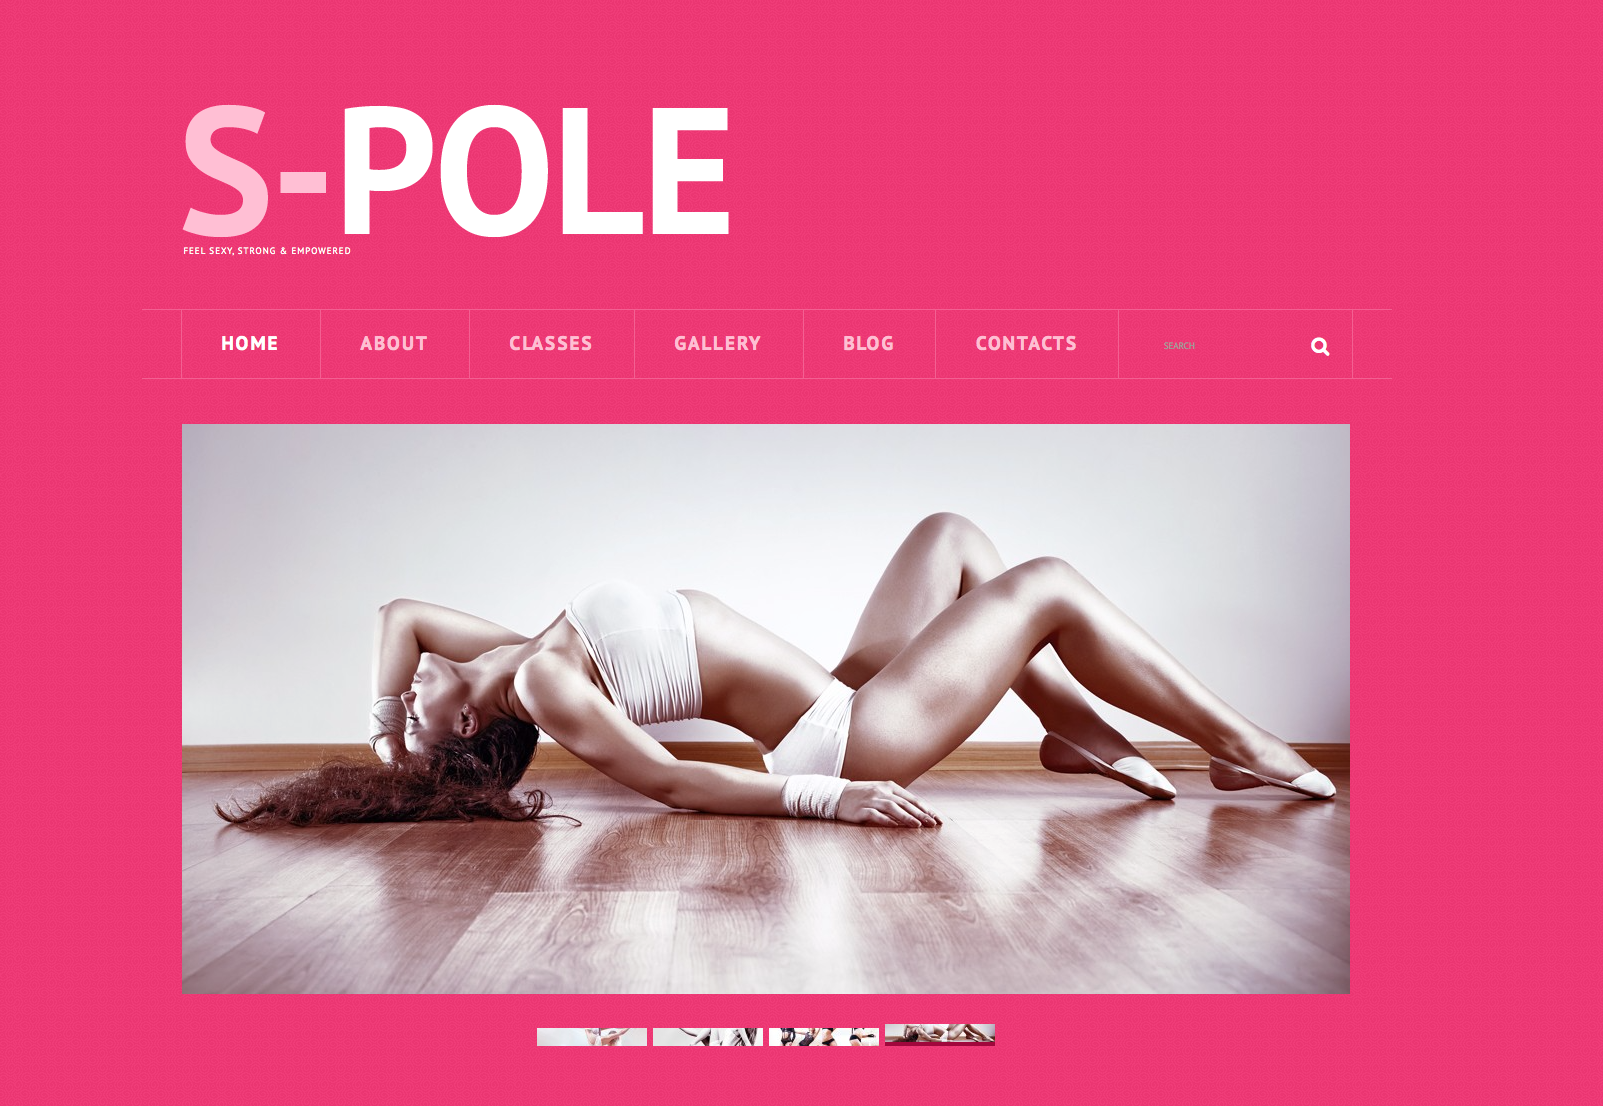 S-pole - theme for women